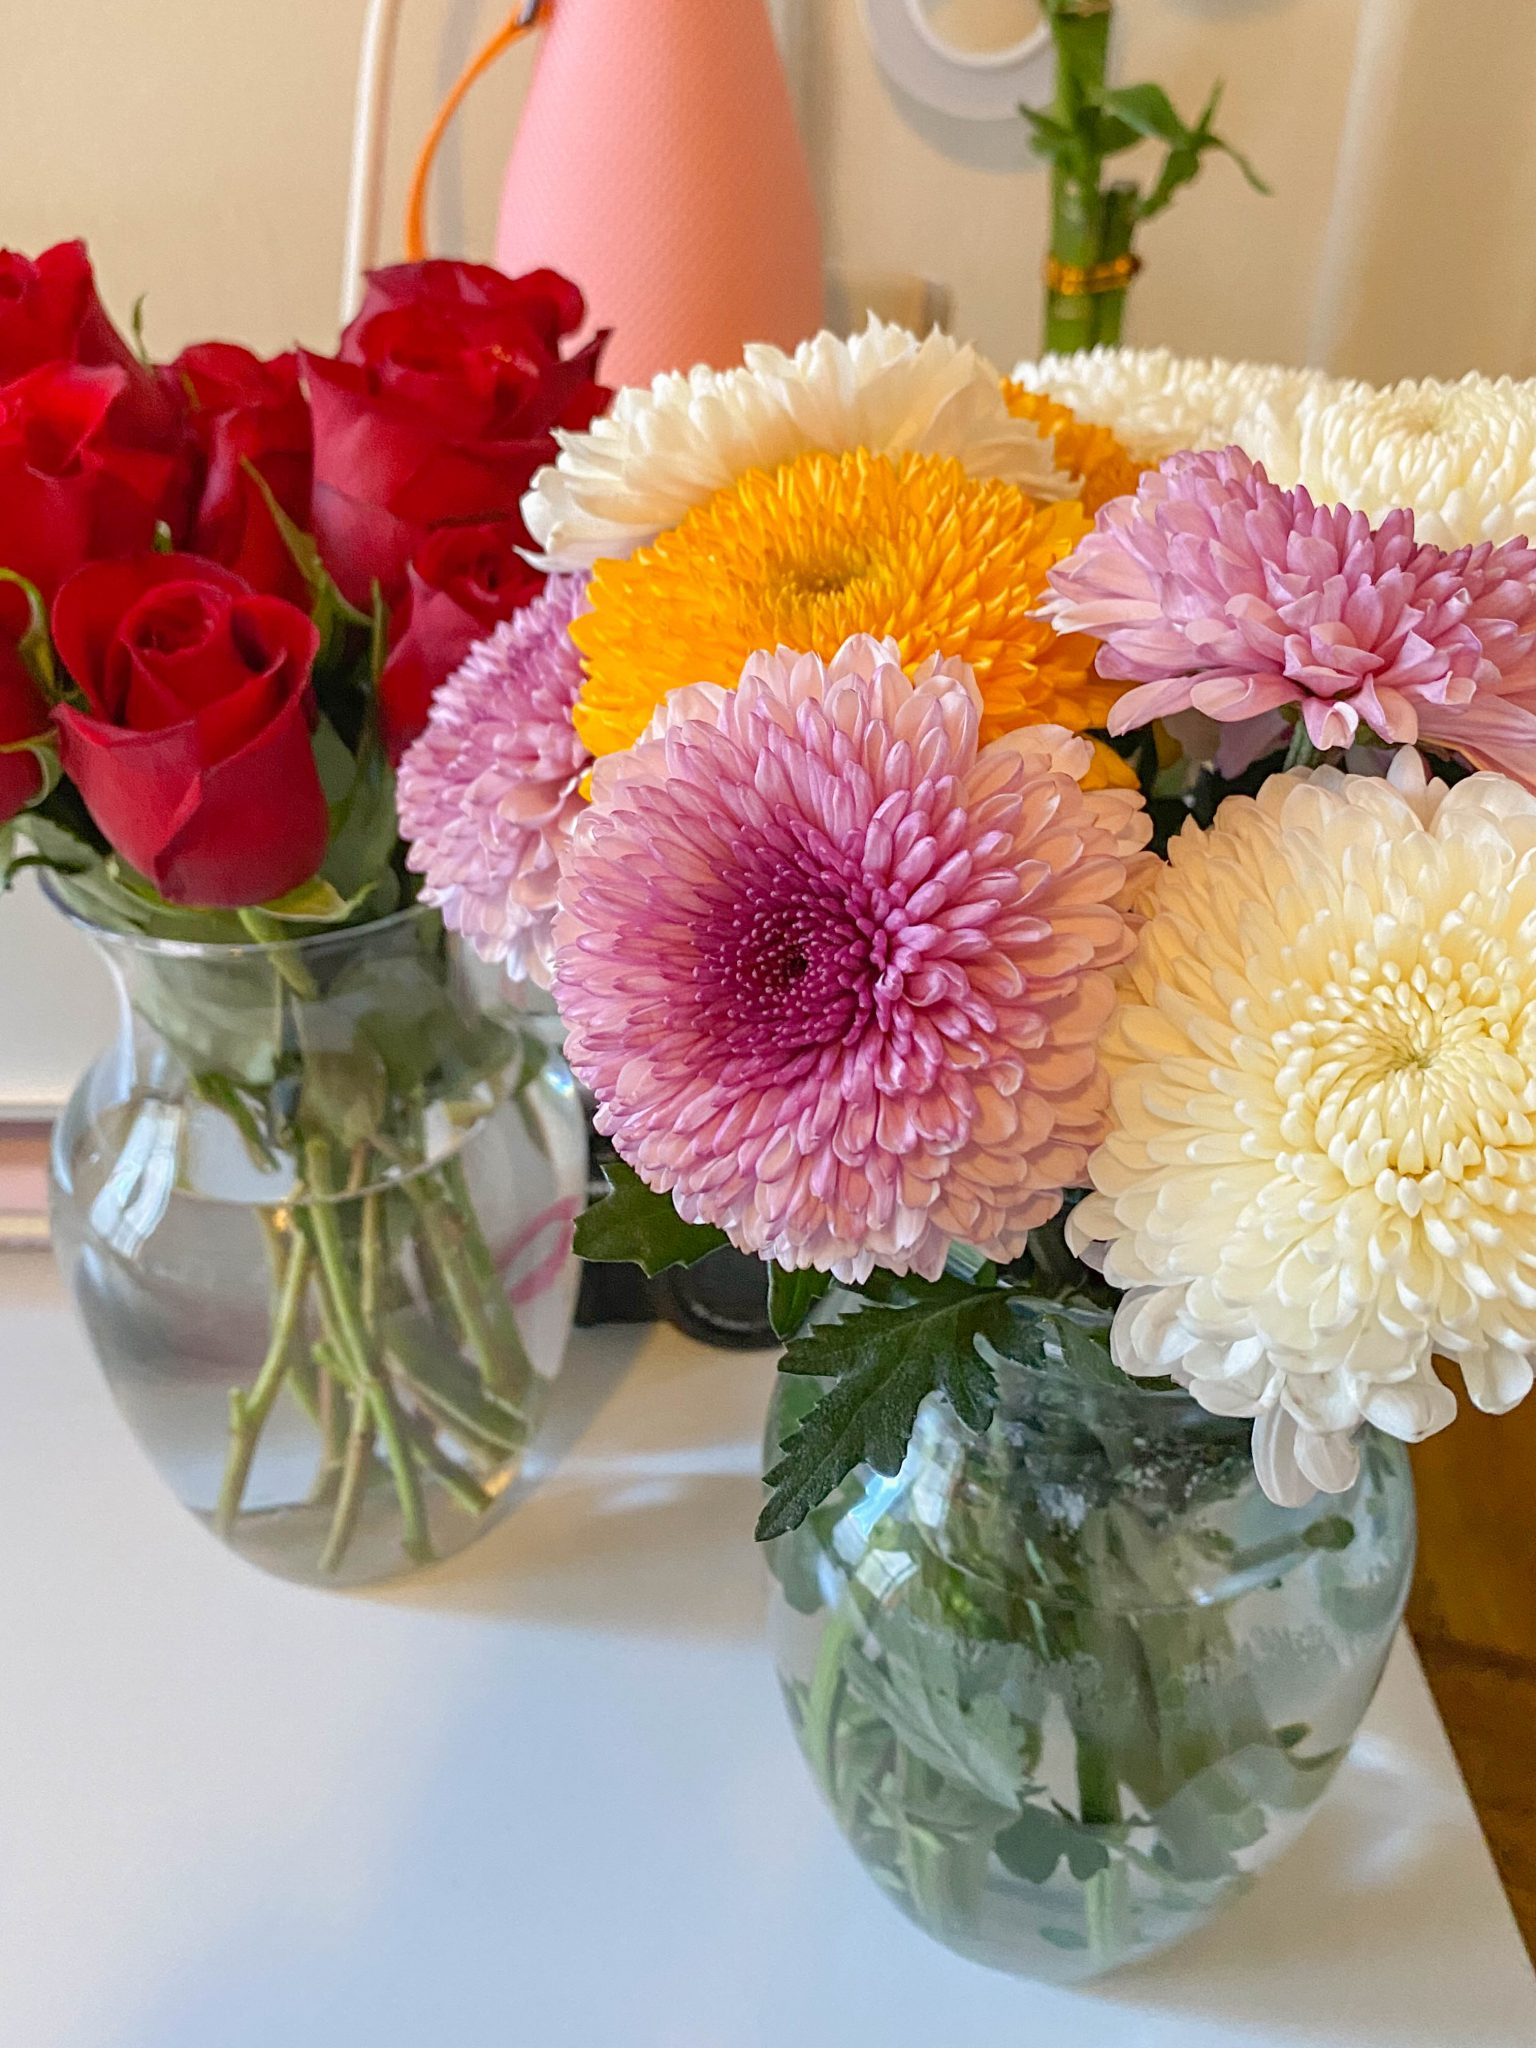 5 Things I'm Currently Loving by Basically A Mess (photo of Trader Joe's Fresh Flowers)